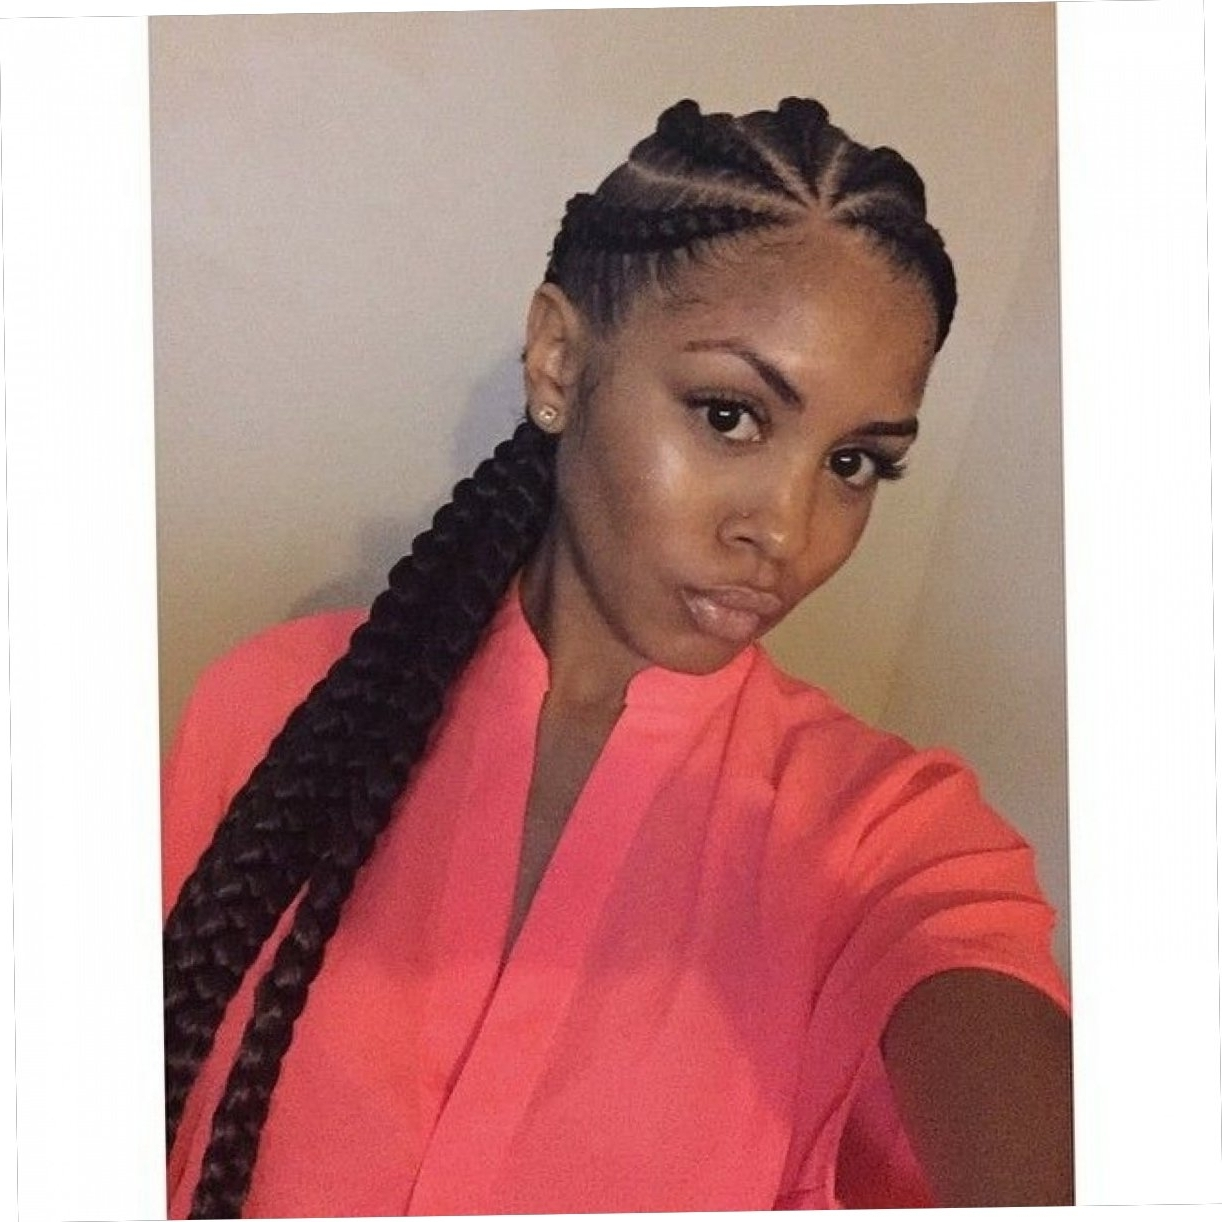 Big Cornrow Intended For 2018 Big Cornrows Hairstyles (View 5 of 15)